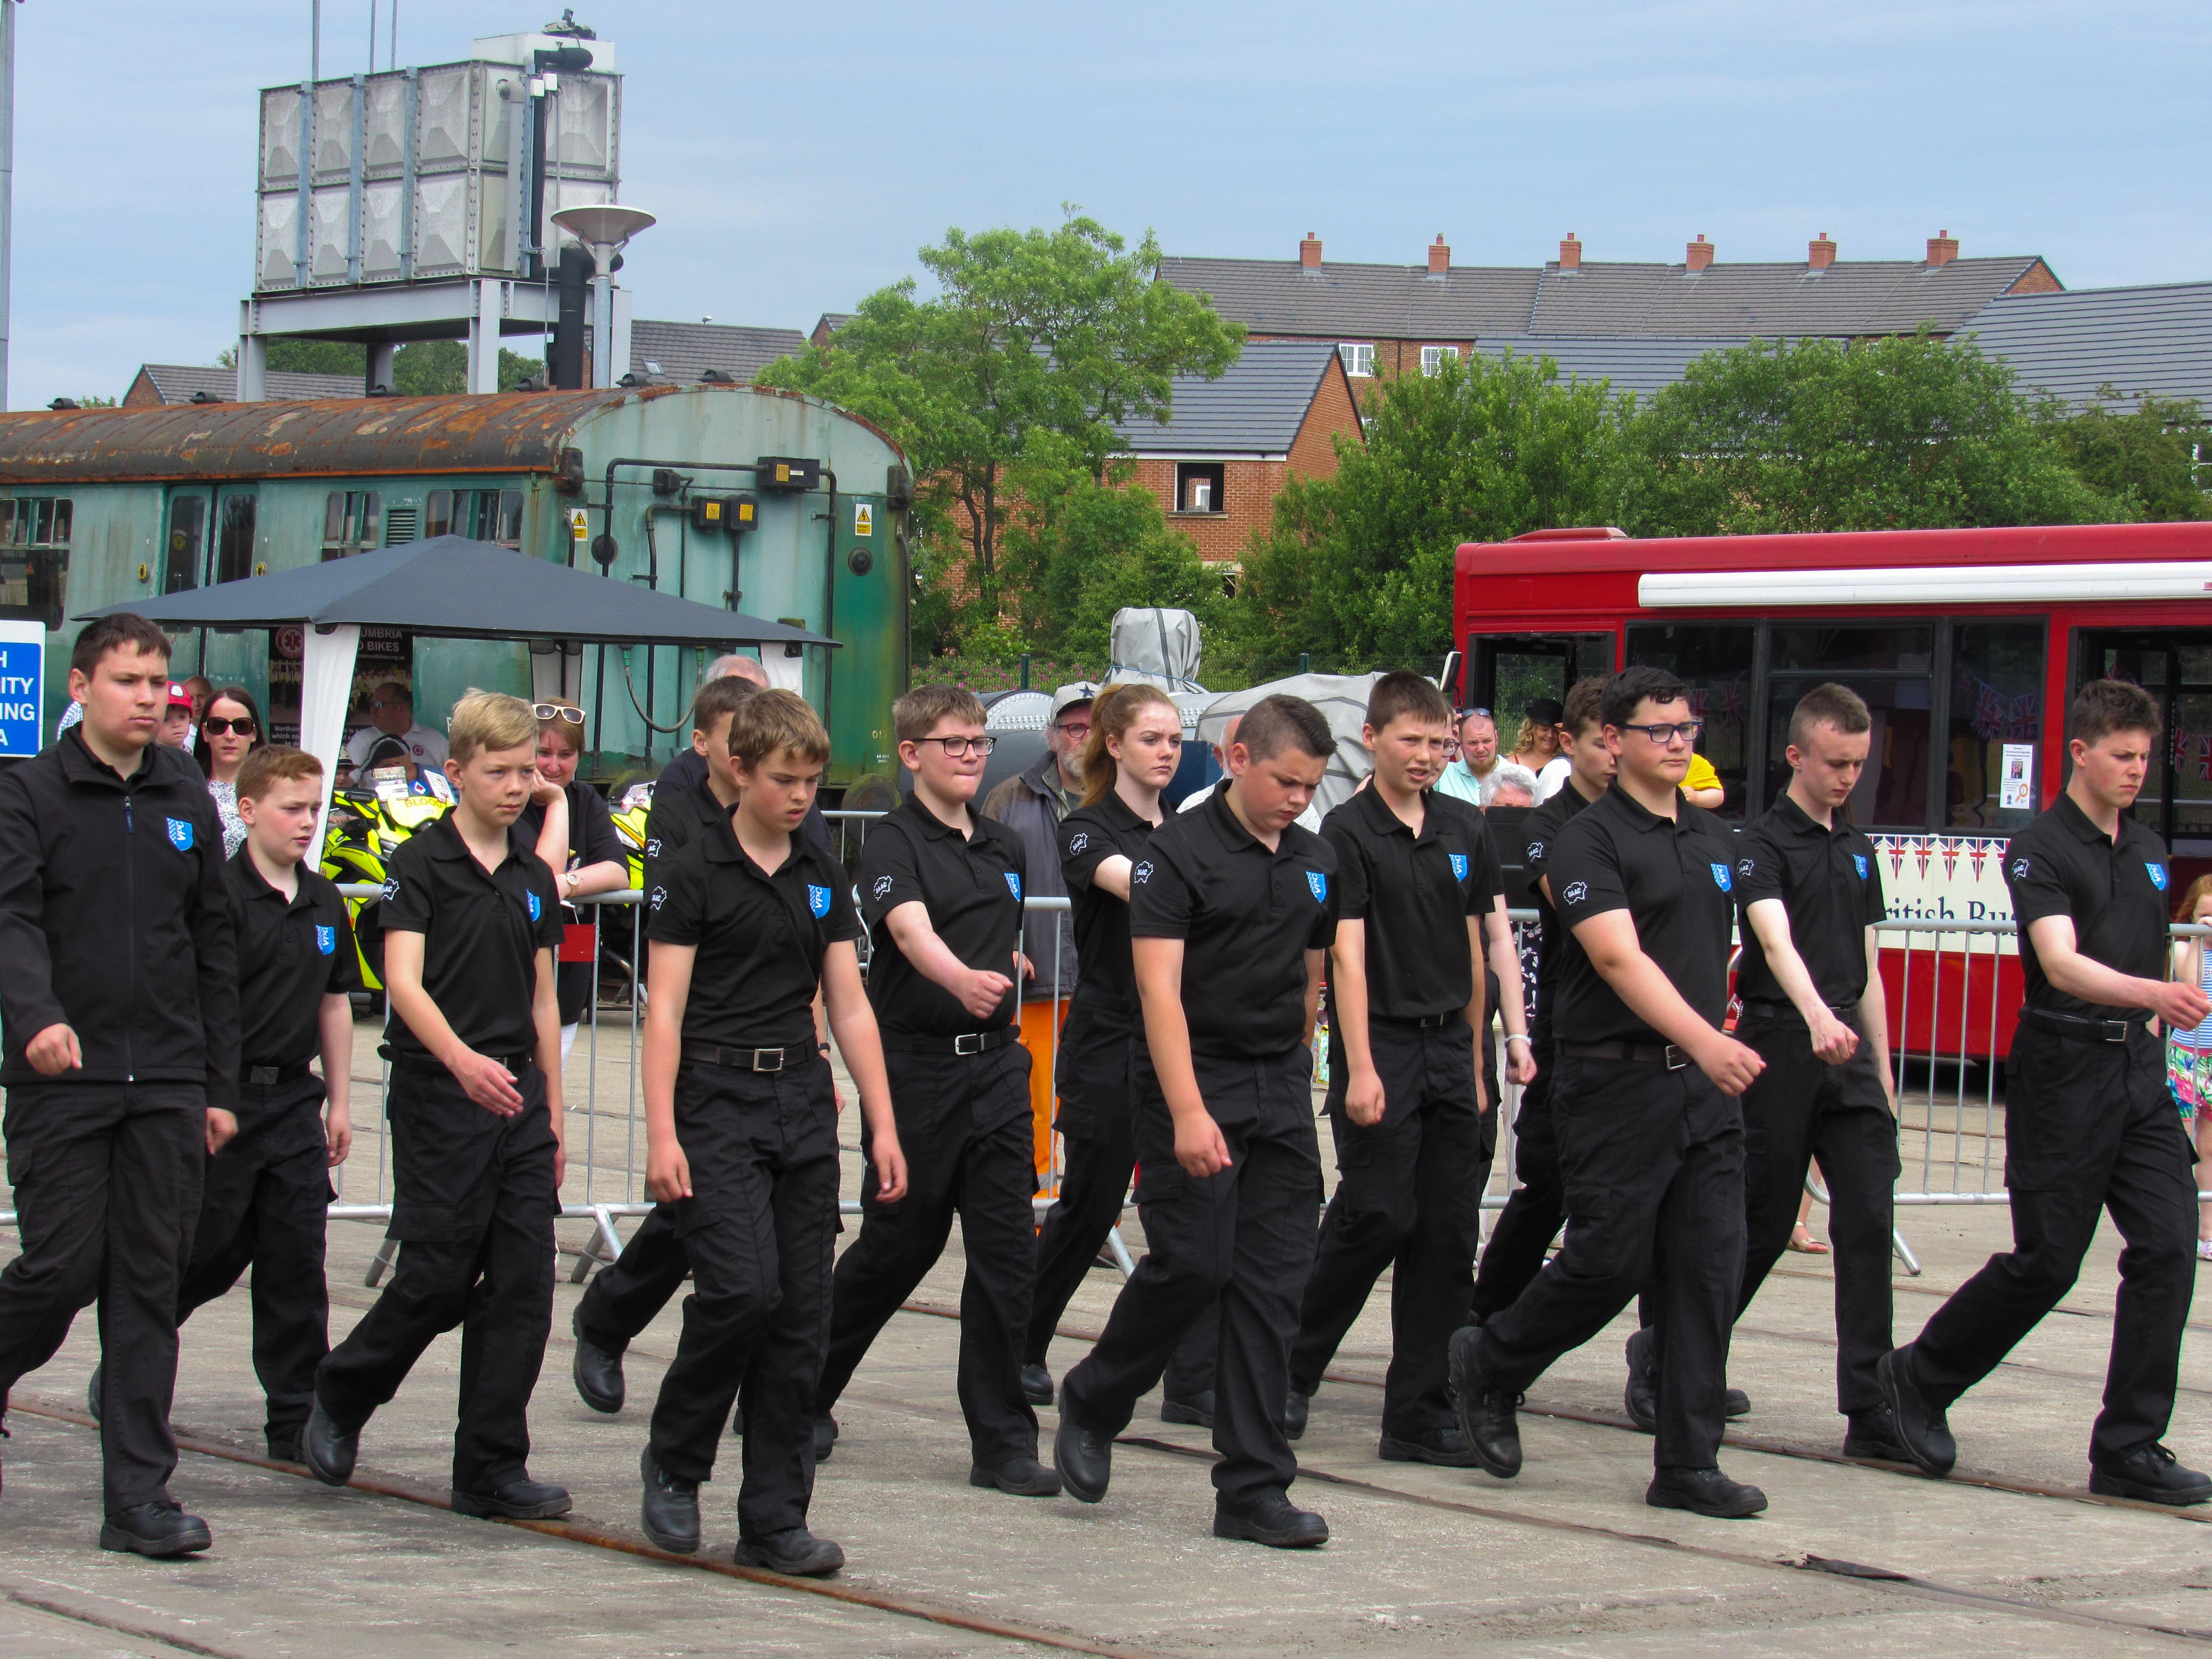 police cadets marching